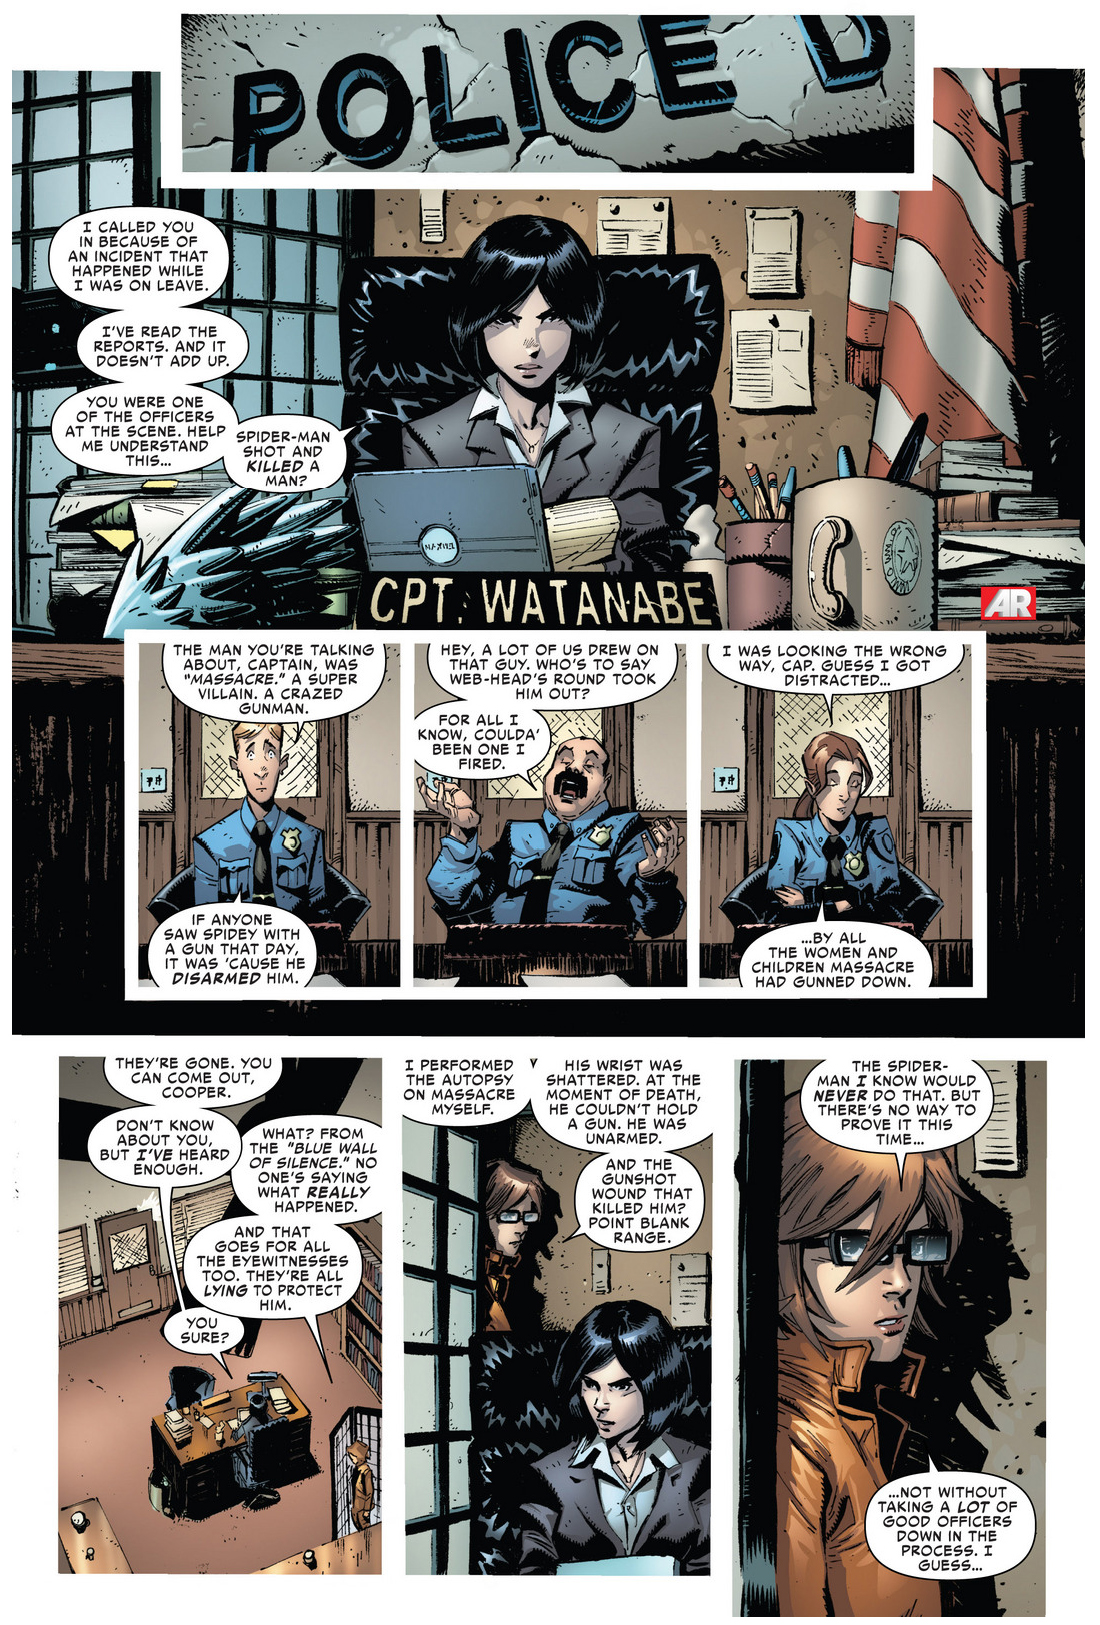 the police lie to protect superior spider-man